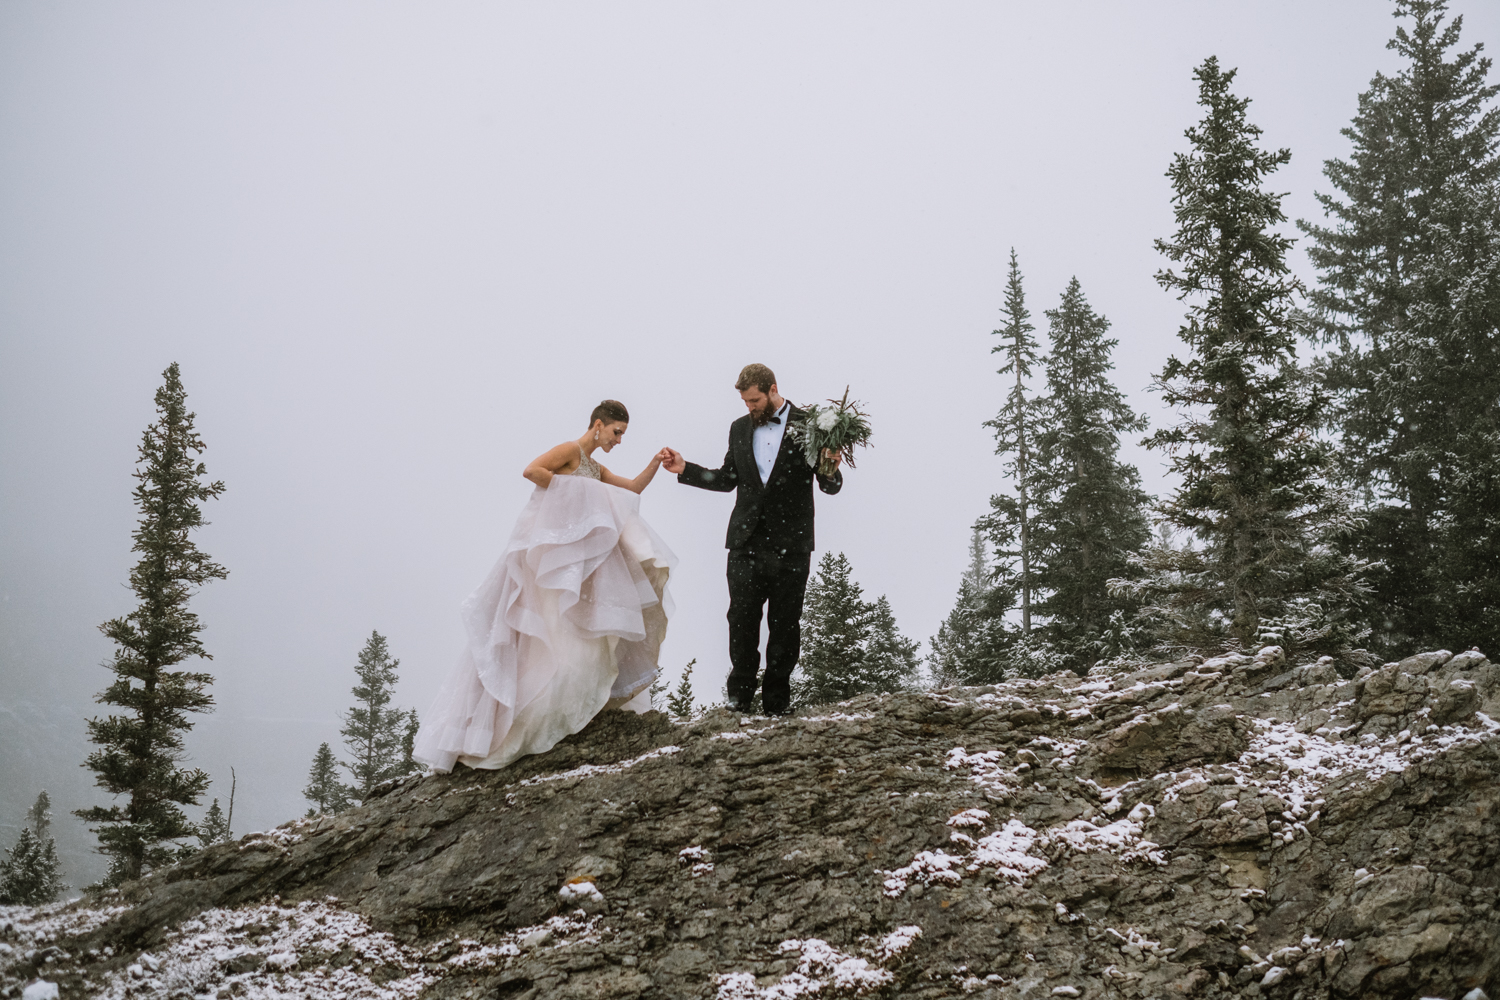 mountain-winter-wedding-with-snow-banff-wedding-photographer-10001-4